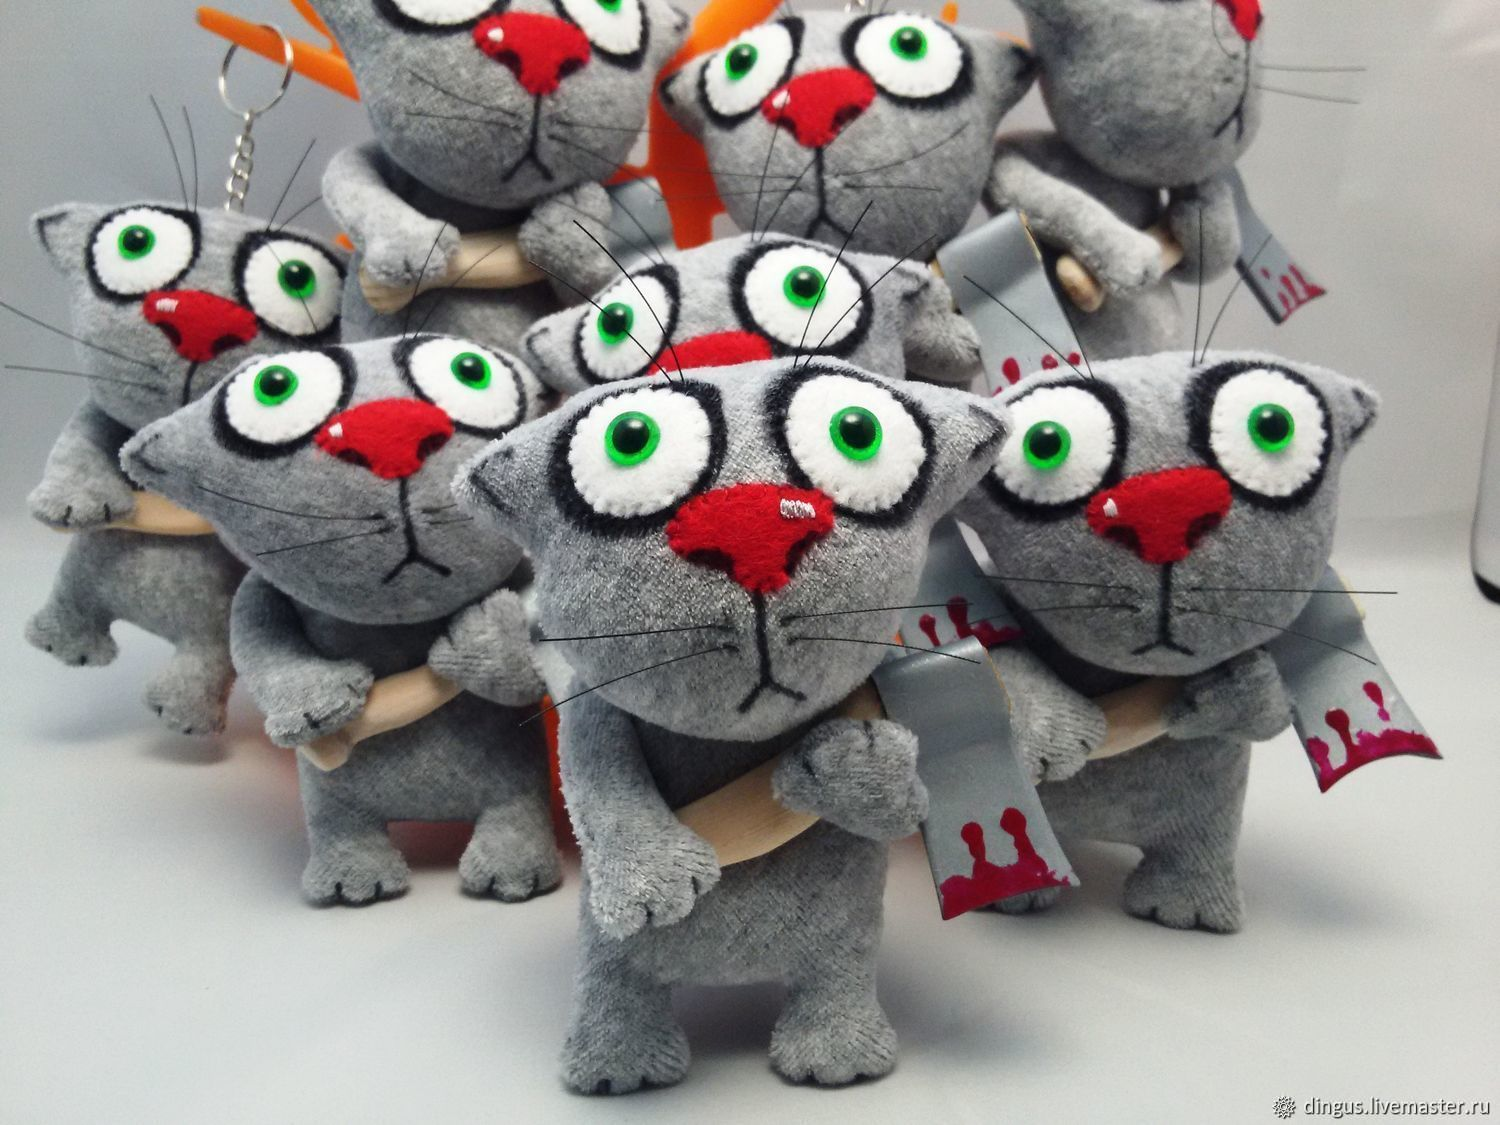 Keychain gray cat plush stuffed toy, gift to the driver in the car, Stuffed Toys, Moscow,  Фото №1